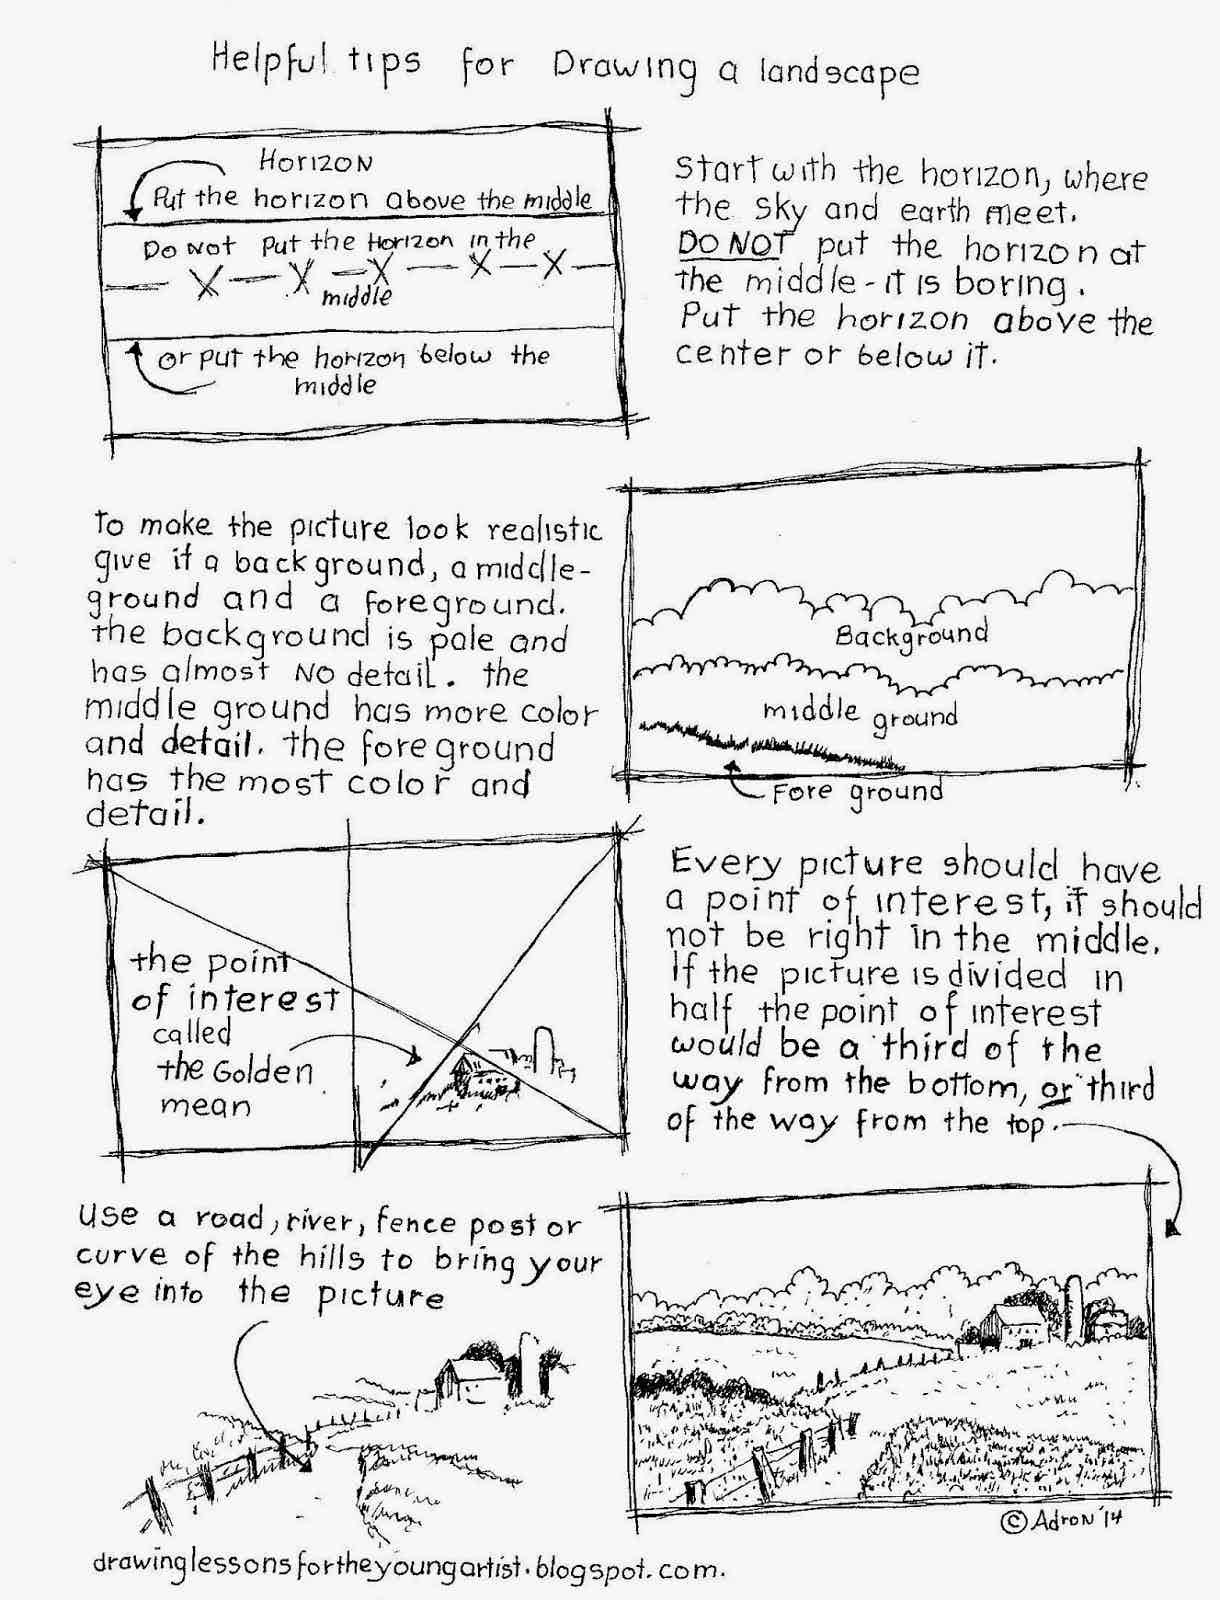 Drawing Conclusions Worksheets 4th Grade Drawing Conclusions Worksheet 2nd Grade Printable Worksheets